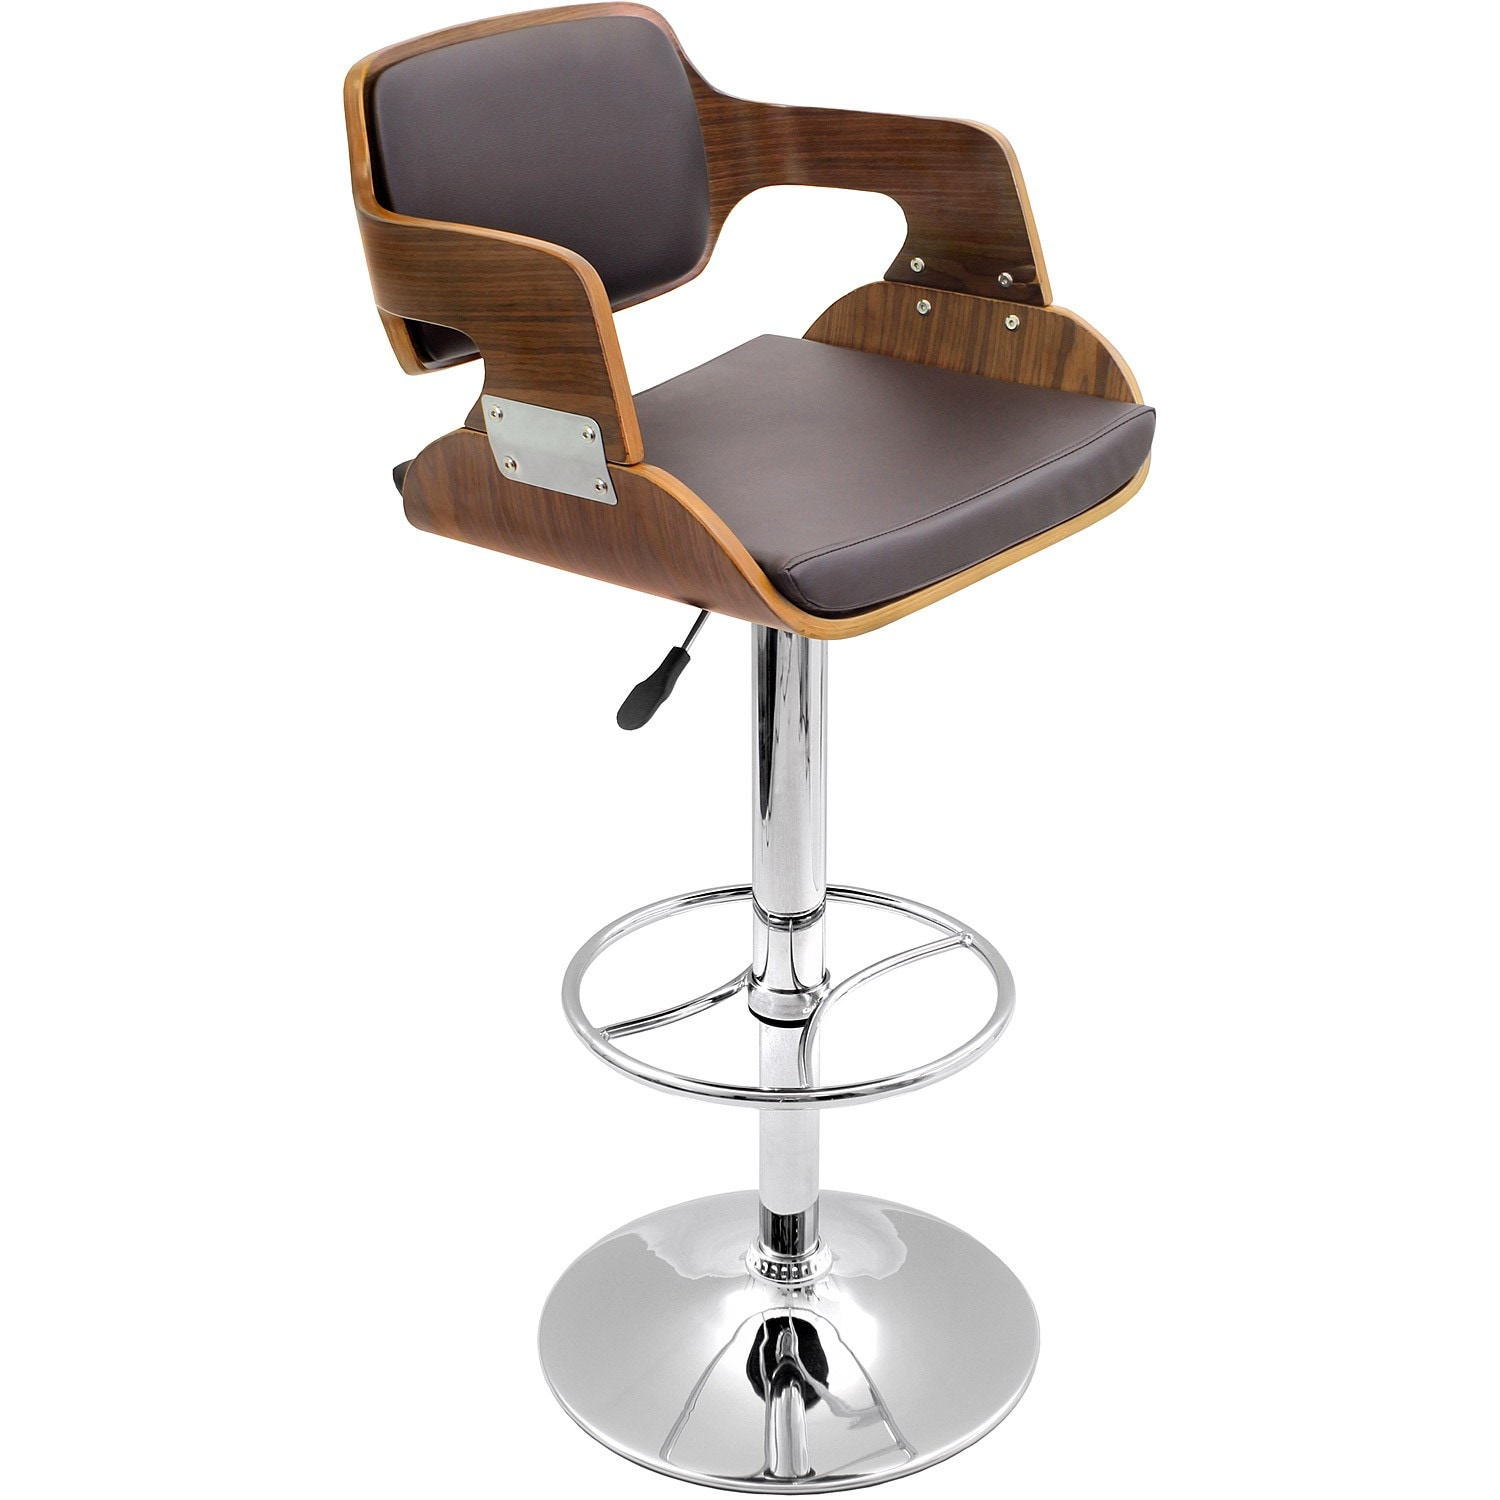 Shop fiore walnut wood mid century modern barstool on sale free shipping today overstock com 6223051